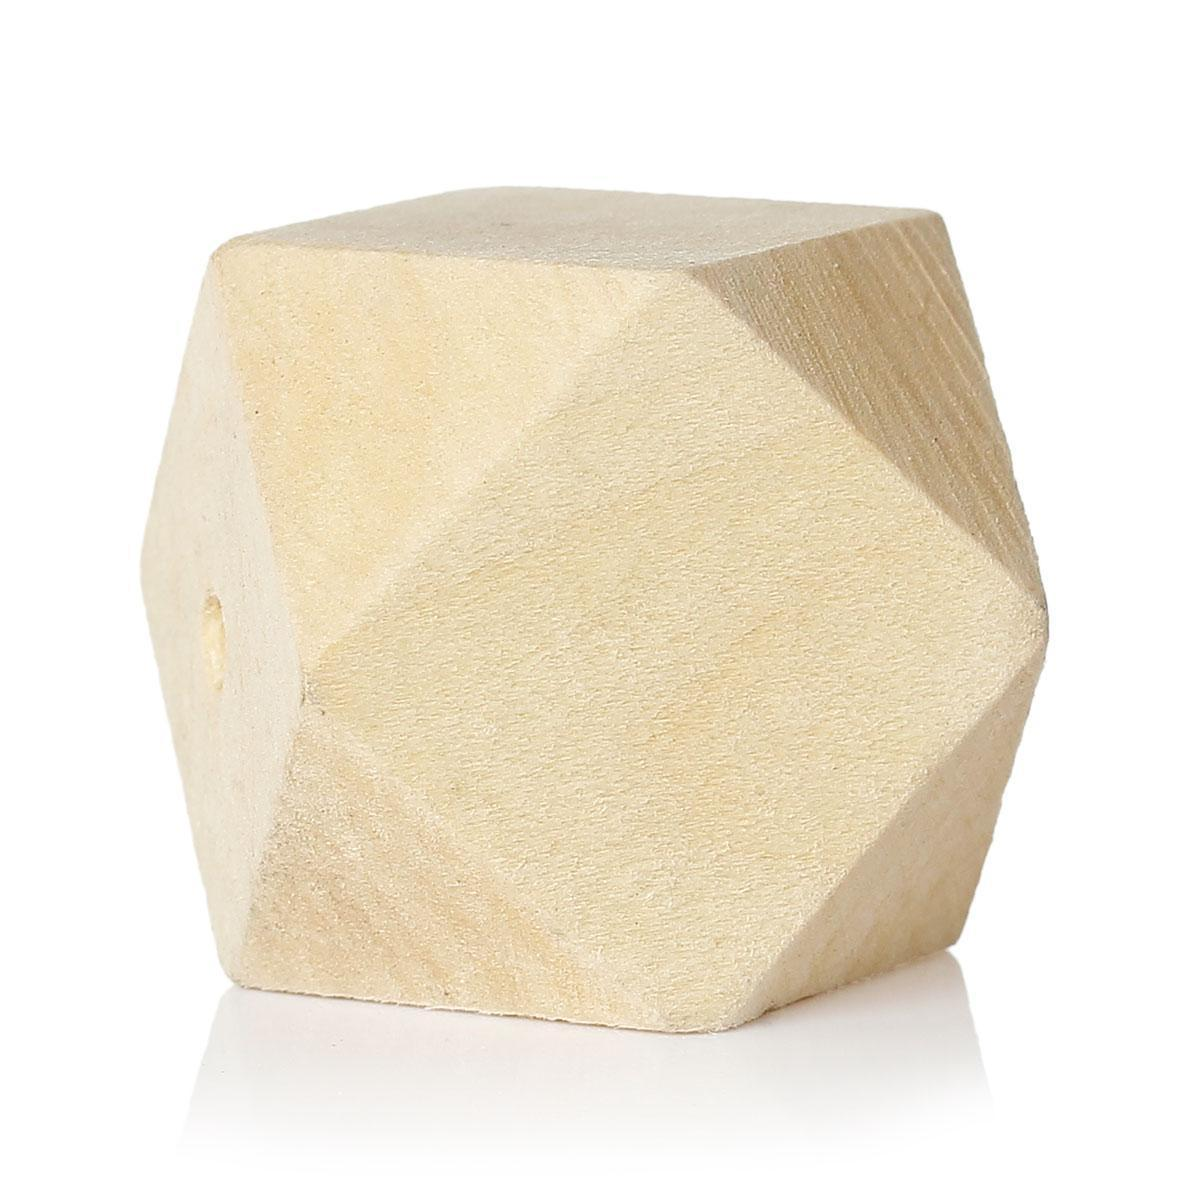 "Free Ship! Wood Spacer Beads Polygon Natural About 3.0cm(1 1/8"") x 3.0cm(1 1/8""), Hole: Approx 4.3mm-4.9mm, 5 PCs FOR APP SALE"